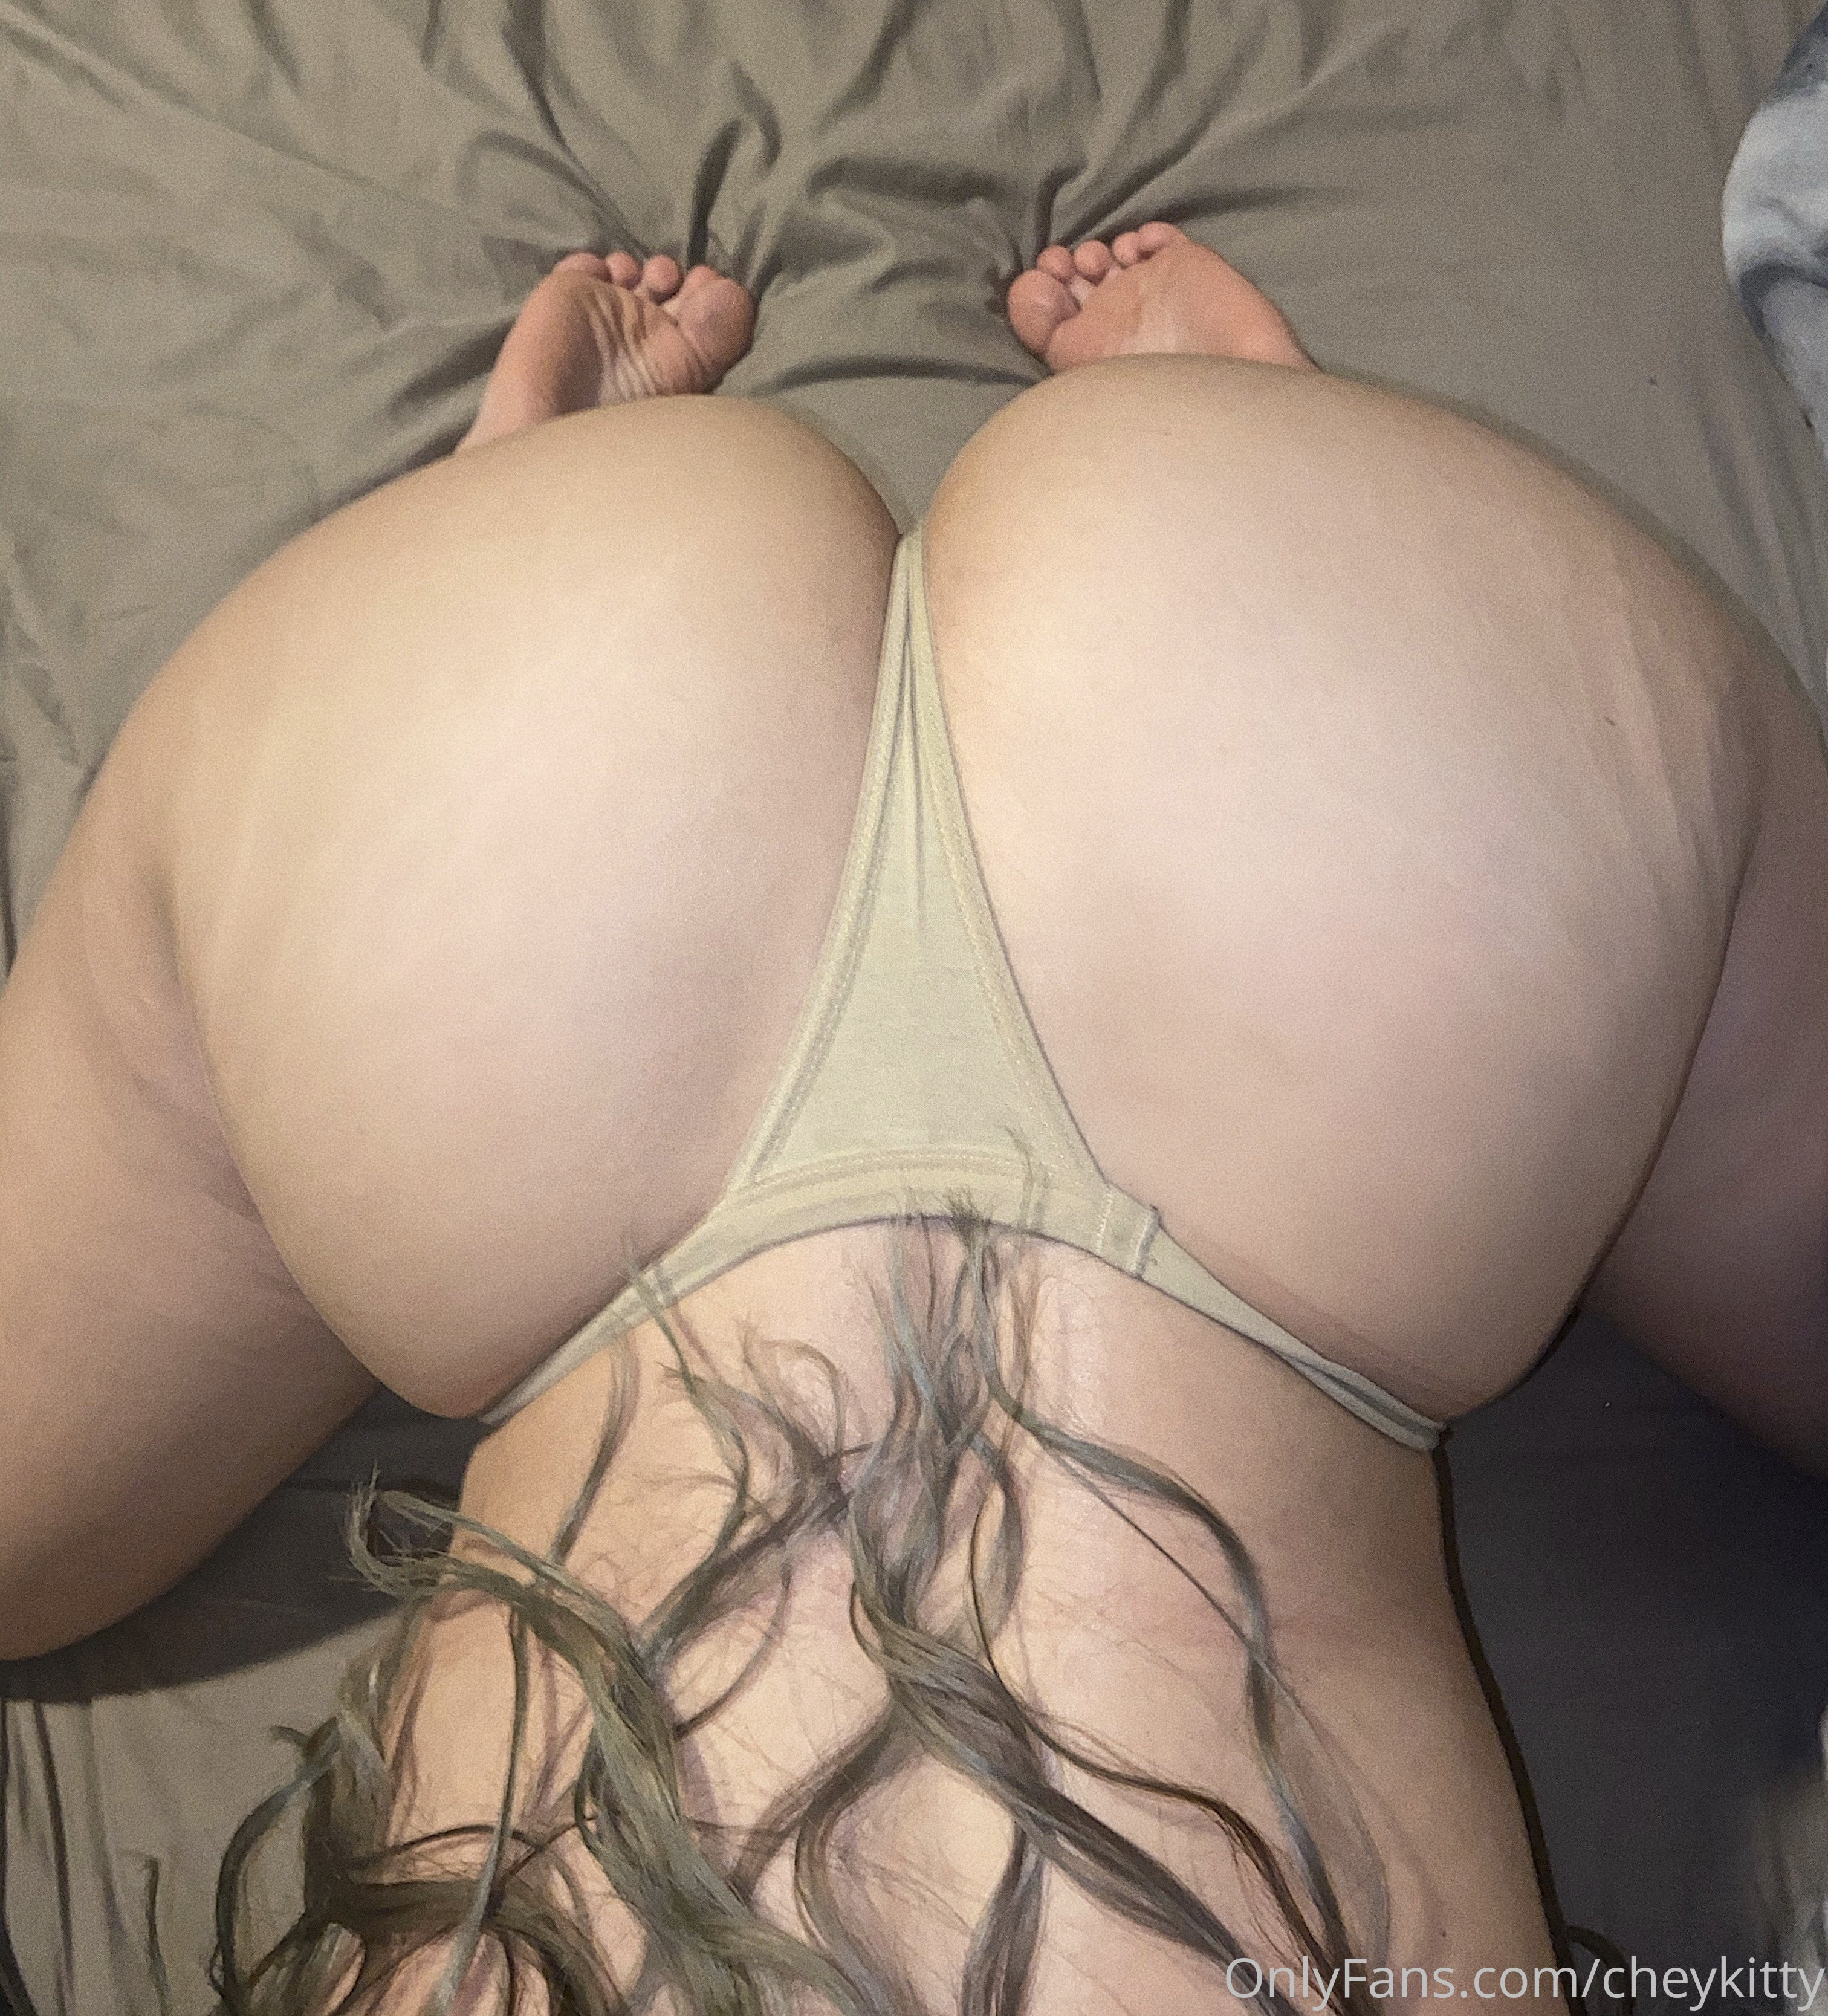 Cheykitty Onlyfans Leaked 0011